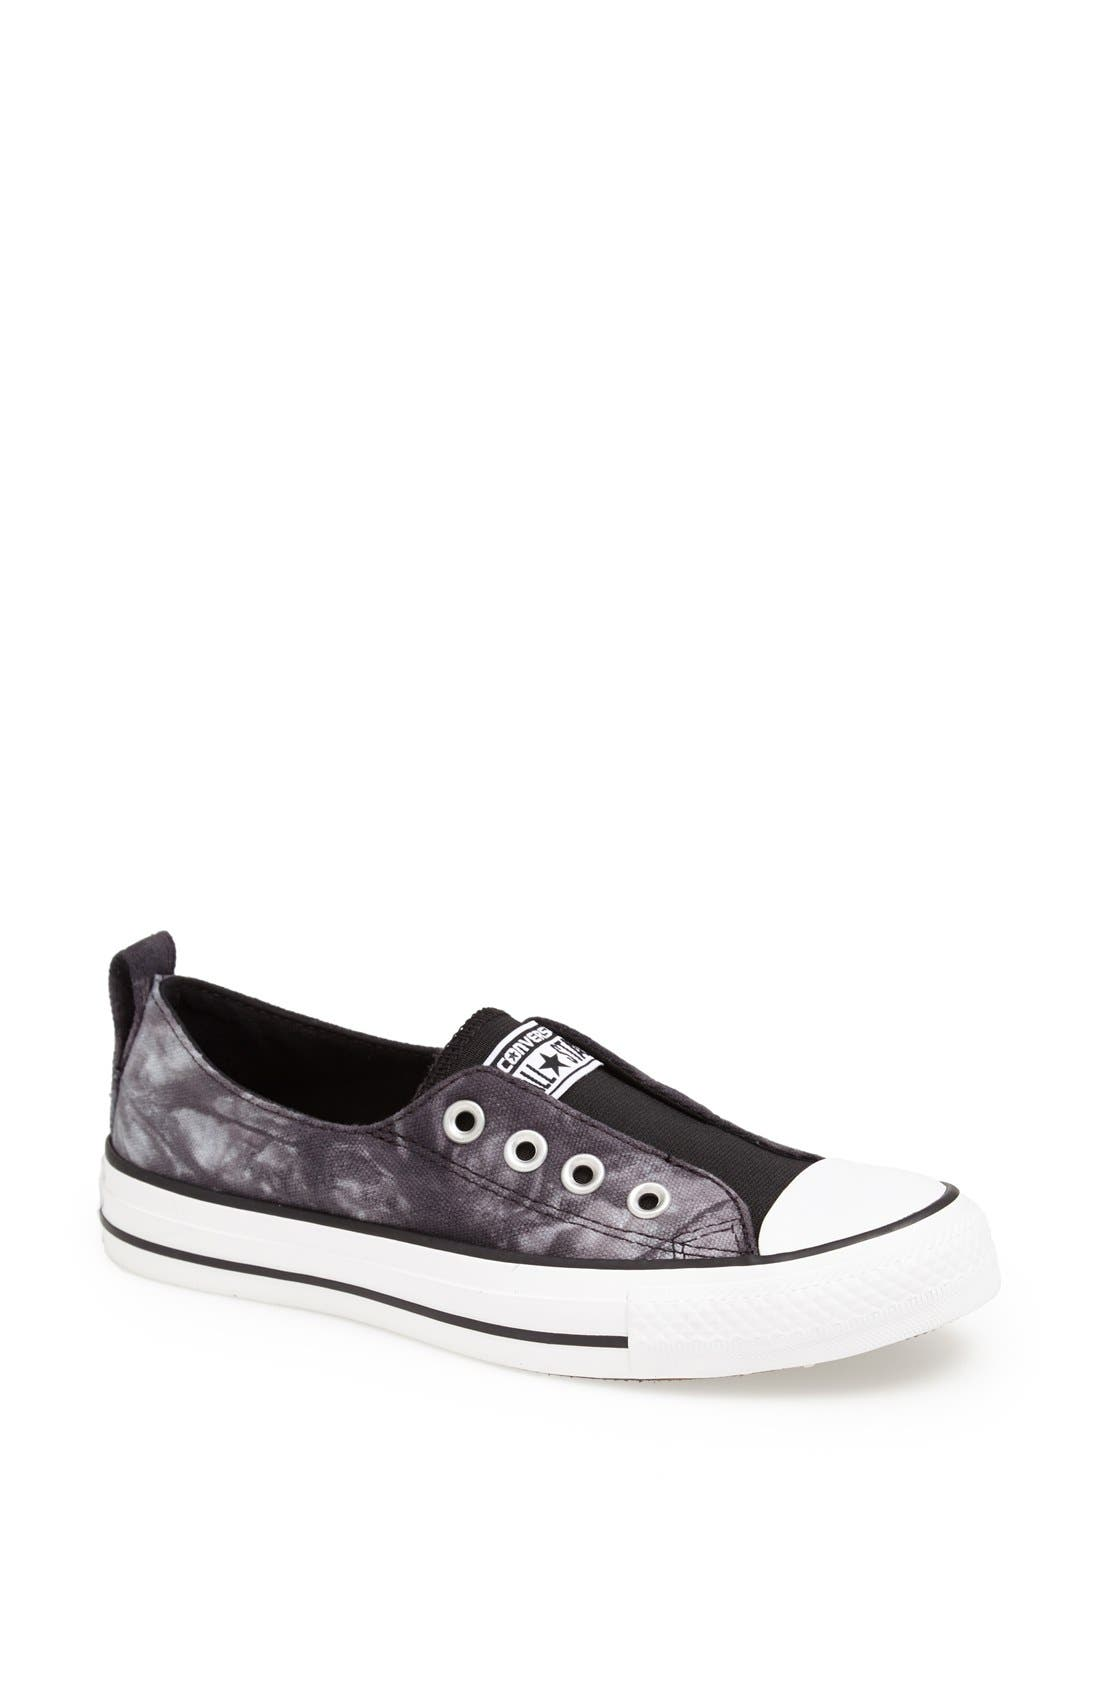 Alternate Image 1 Selected - Converse Chuck Taylor® 'Goreline' Sneaker (Women)